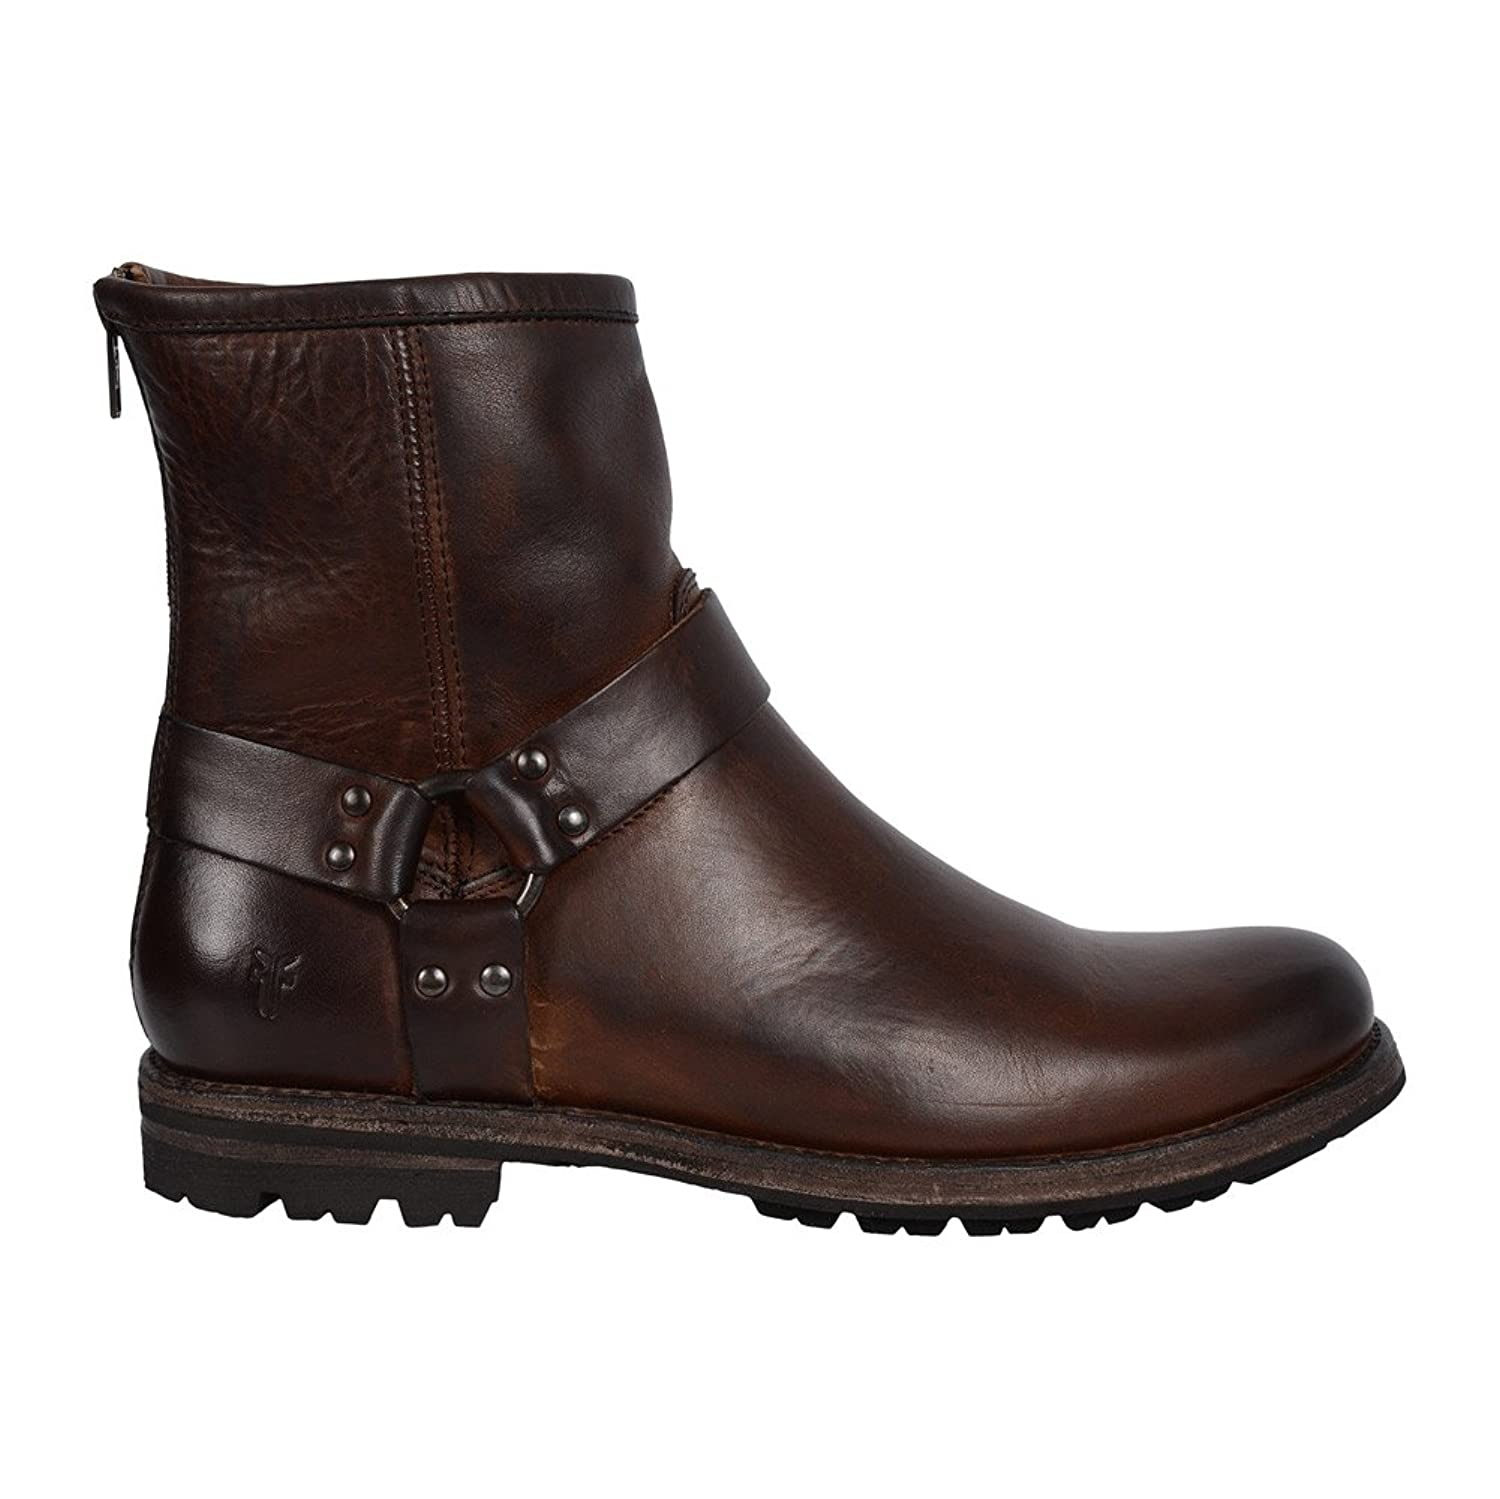 Frye Men's Phillip Lug Harness Dark Brown Oiled Vintage Boot 9.5 D (M): Buy  Online at Low Prices in India - Amazon.in